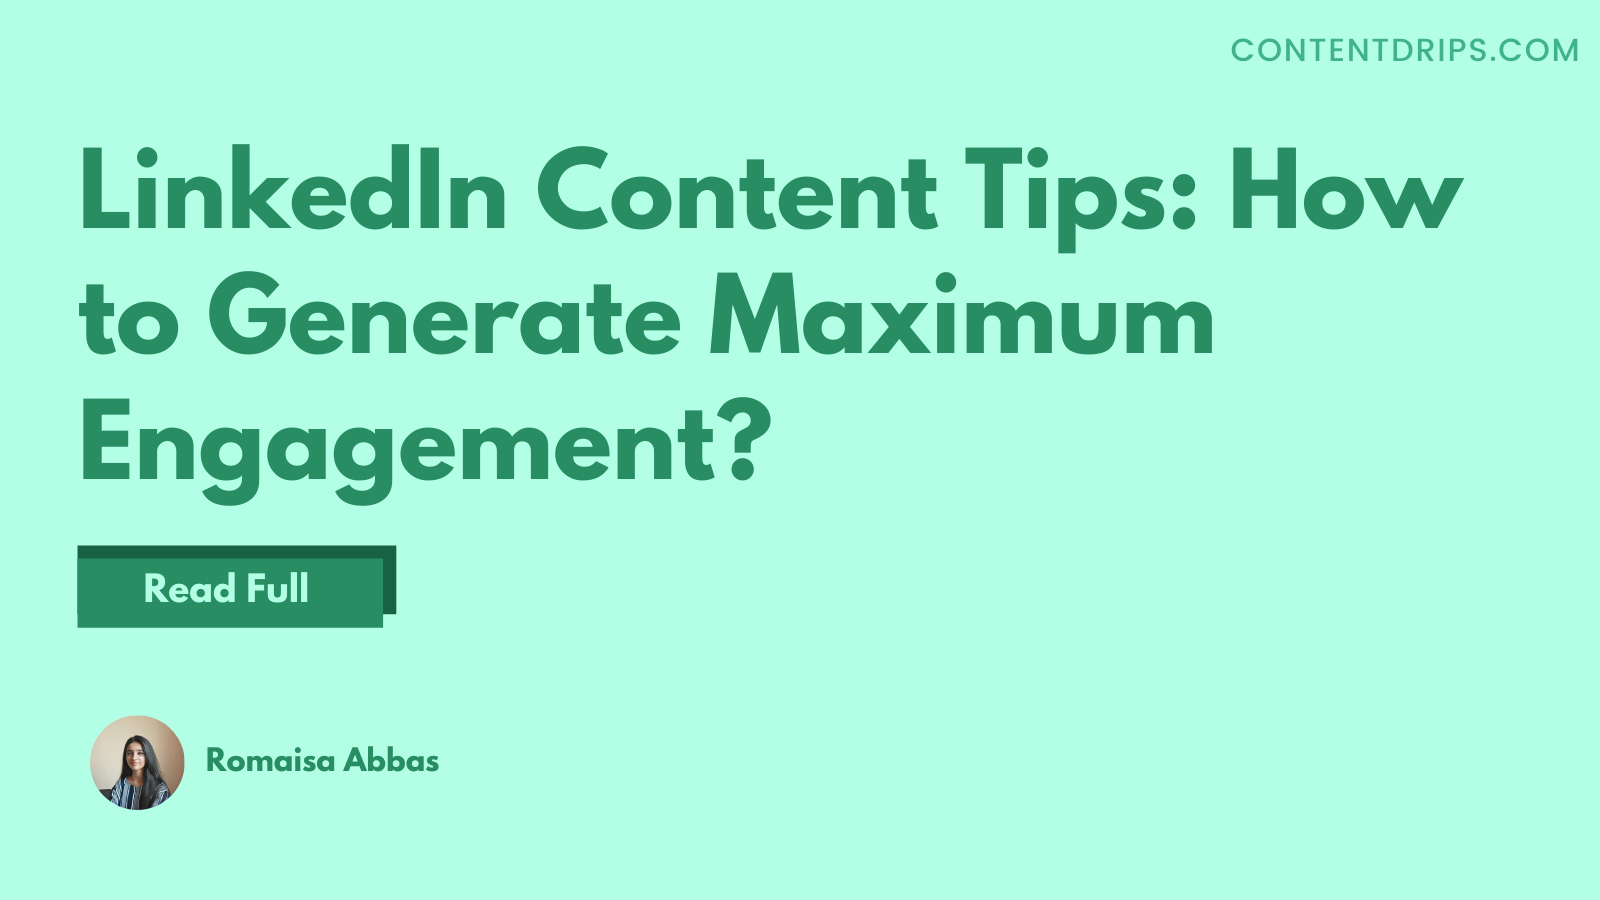 LinkedIn Content Tips: How to Generate Maximum Engagement?